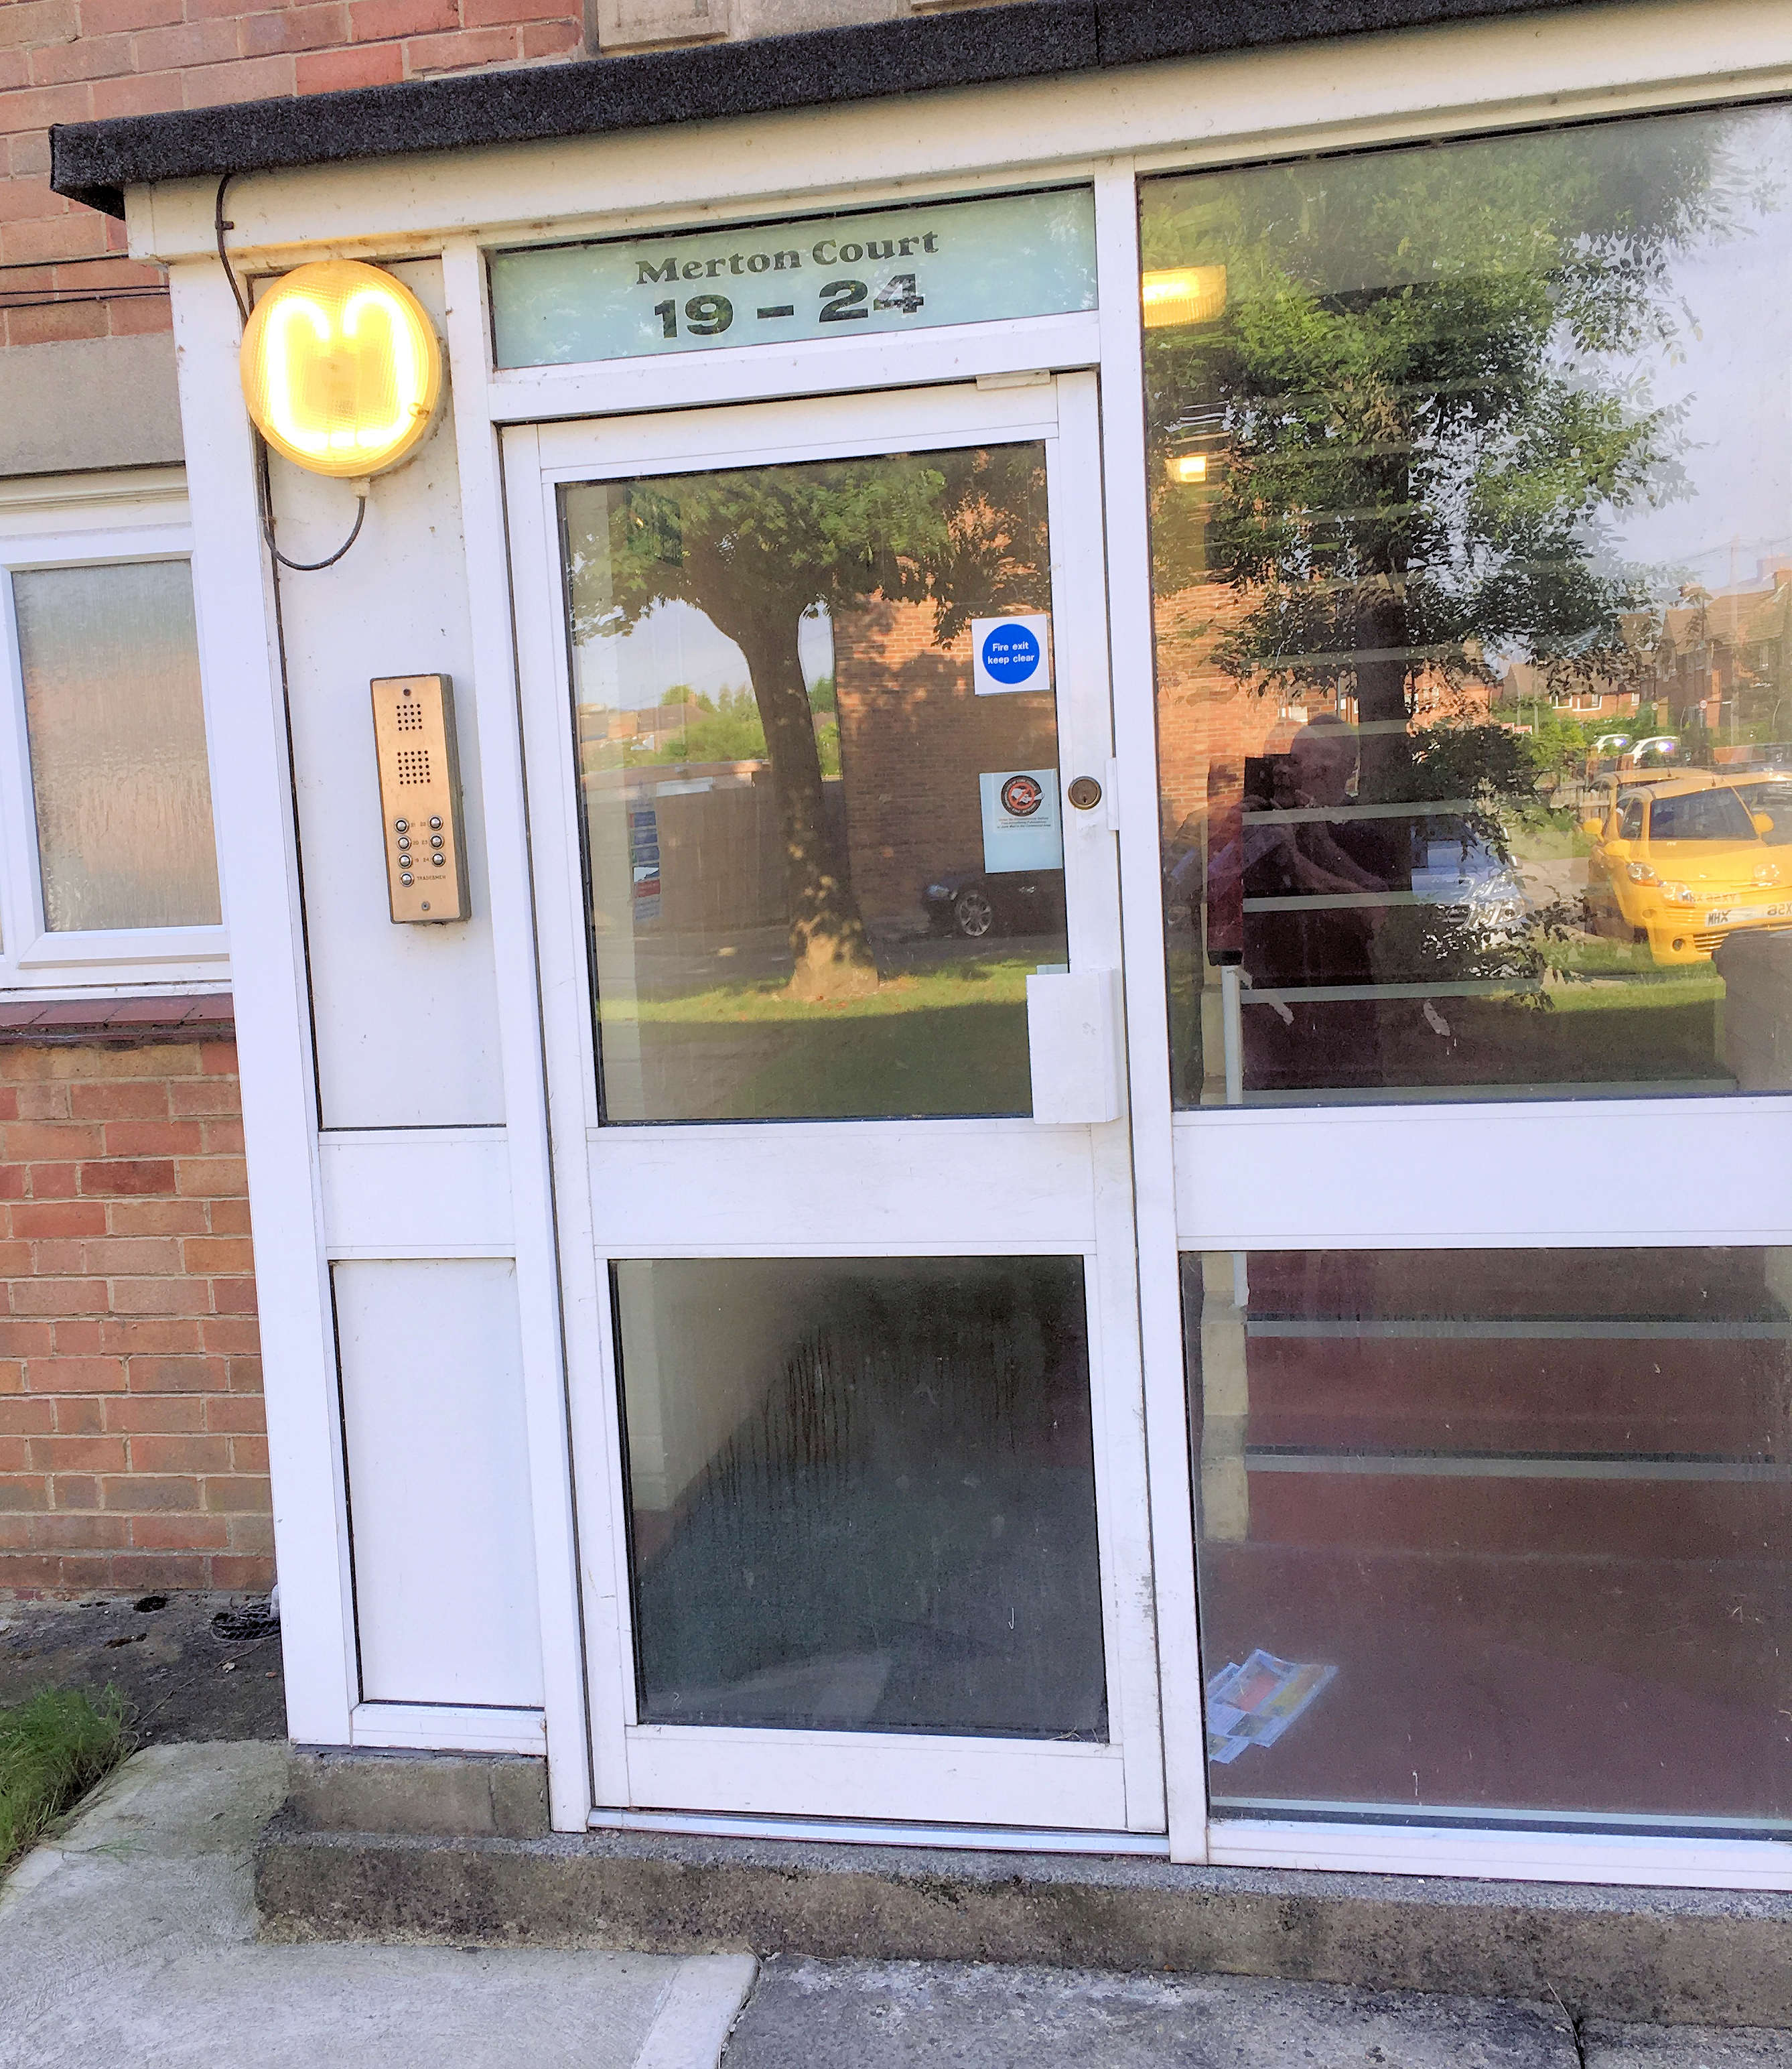 Problems with day burning lights and inoperative door entry systems have been reported